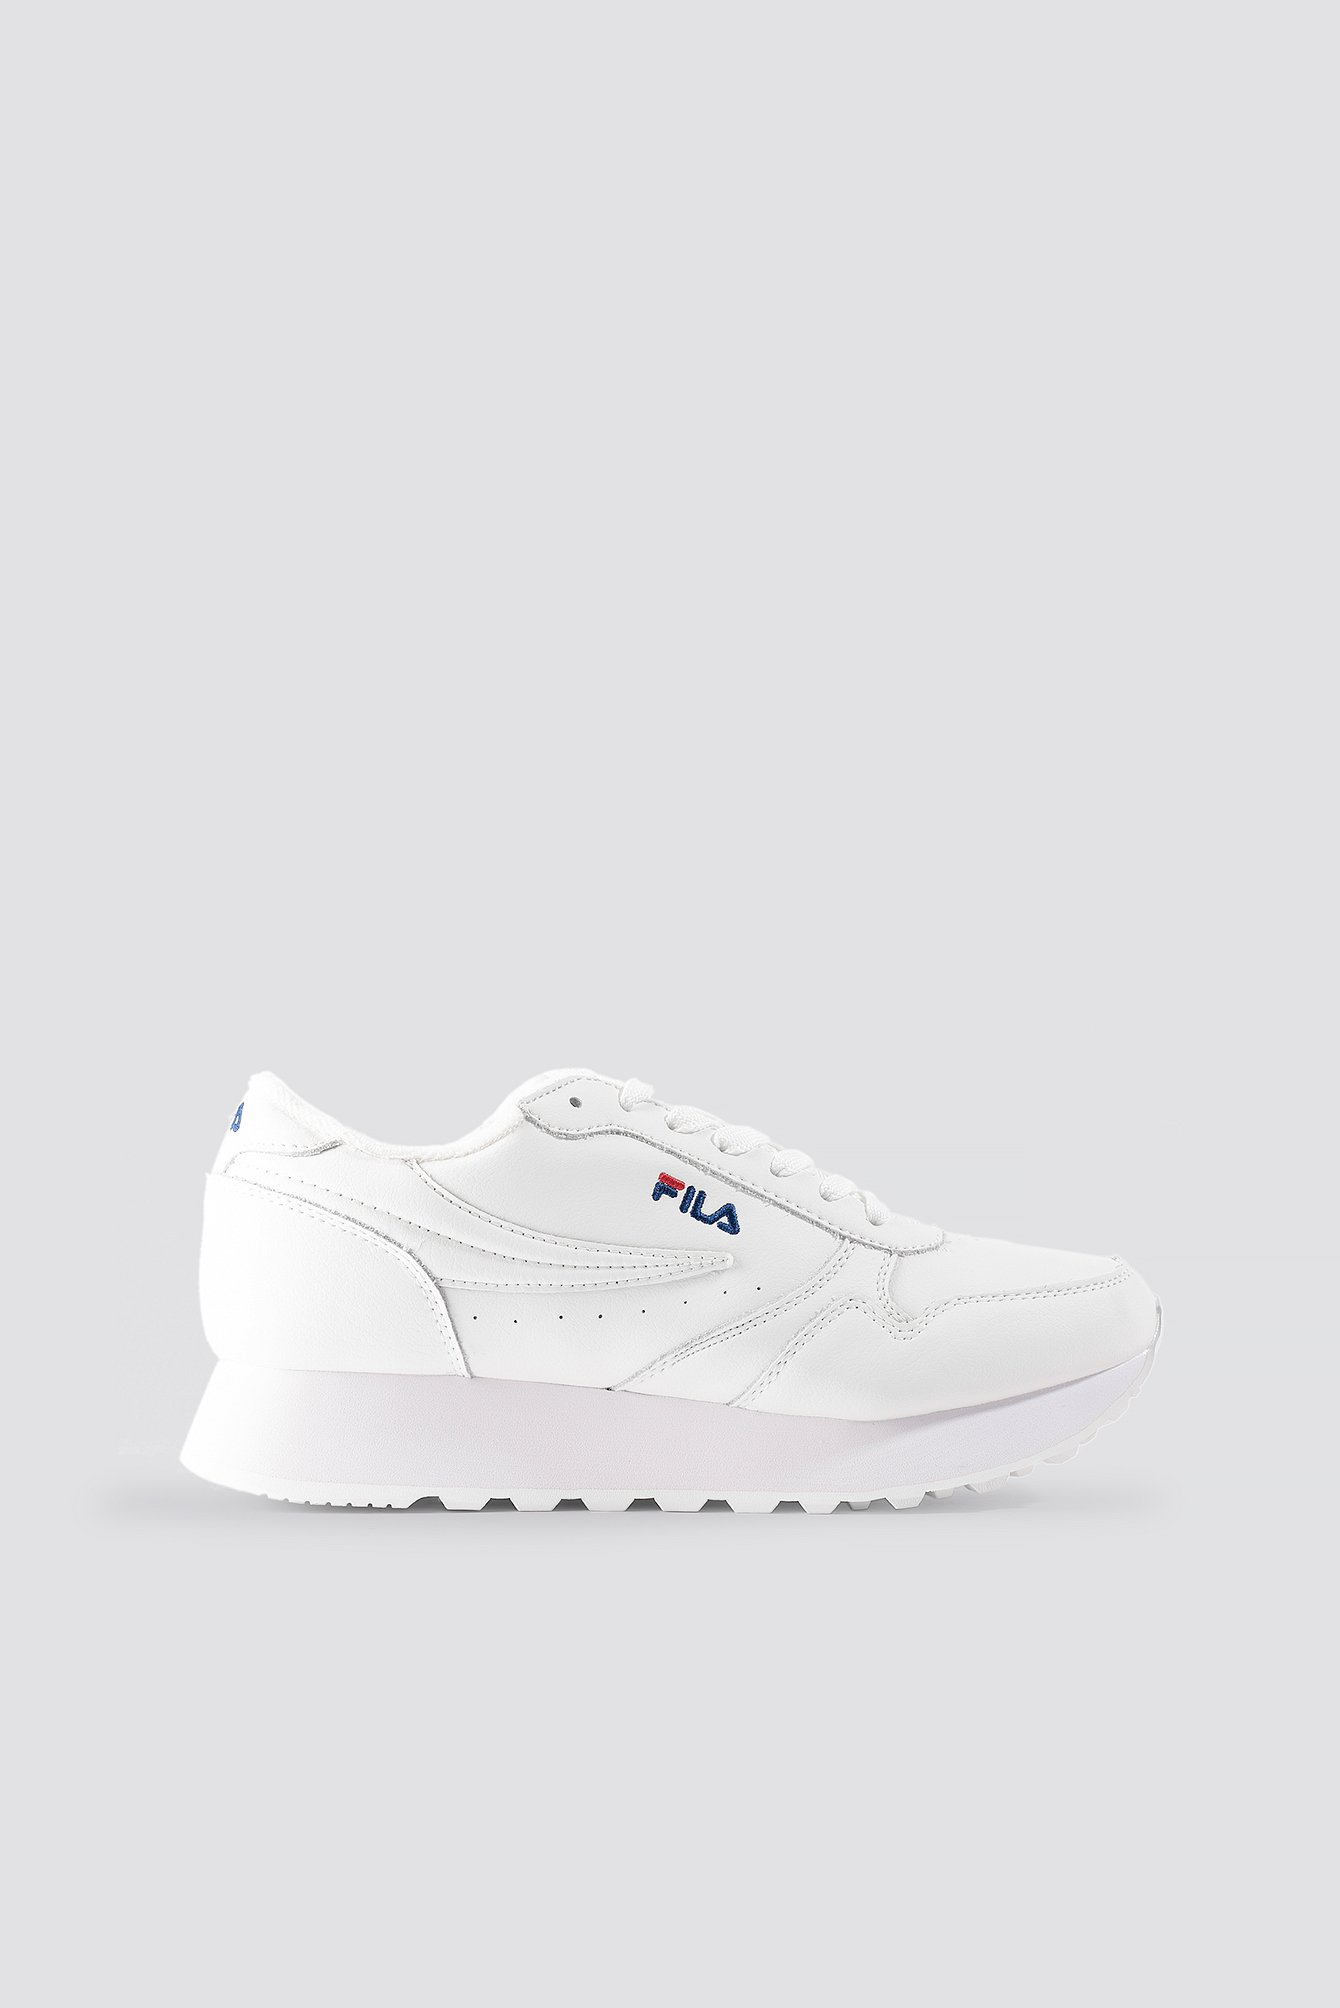 fila -  Orbit Zeppa L Wmn - White